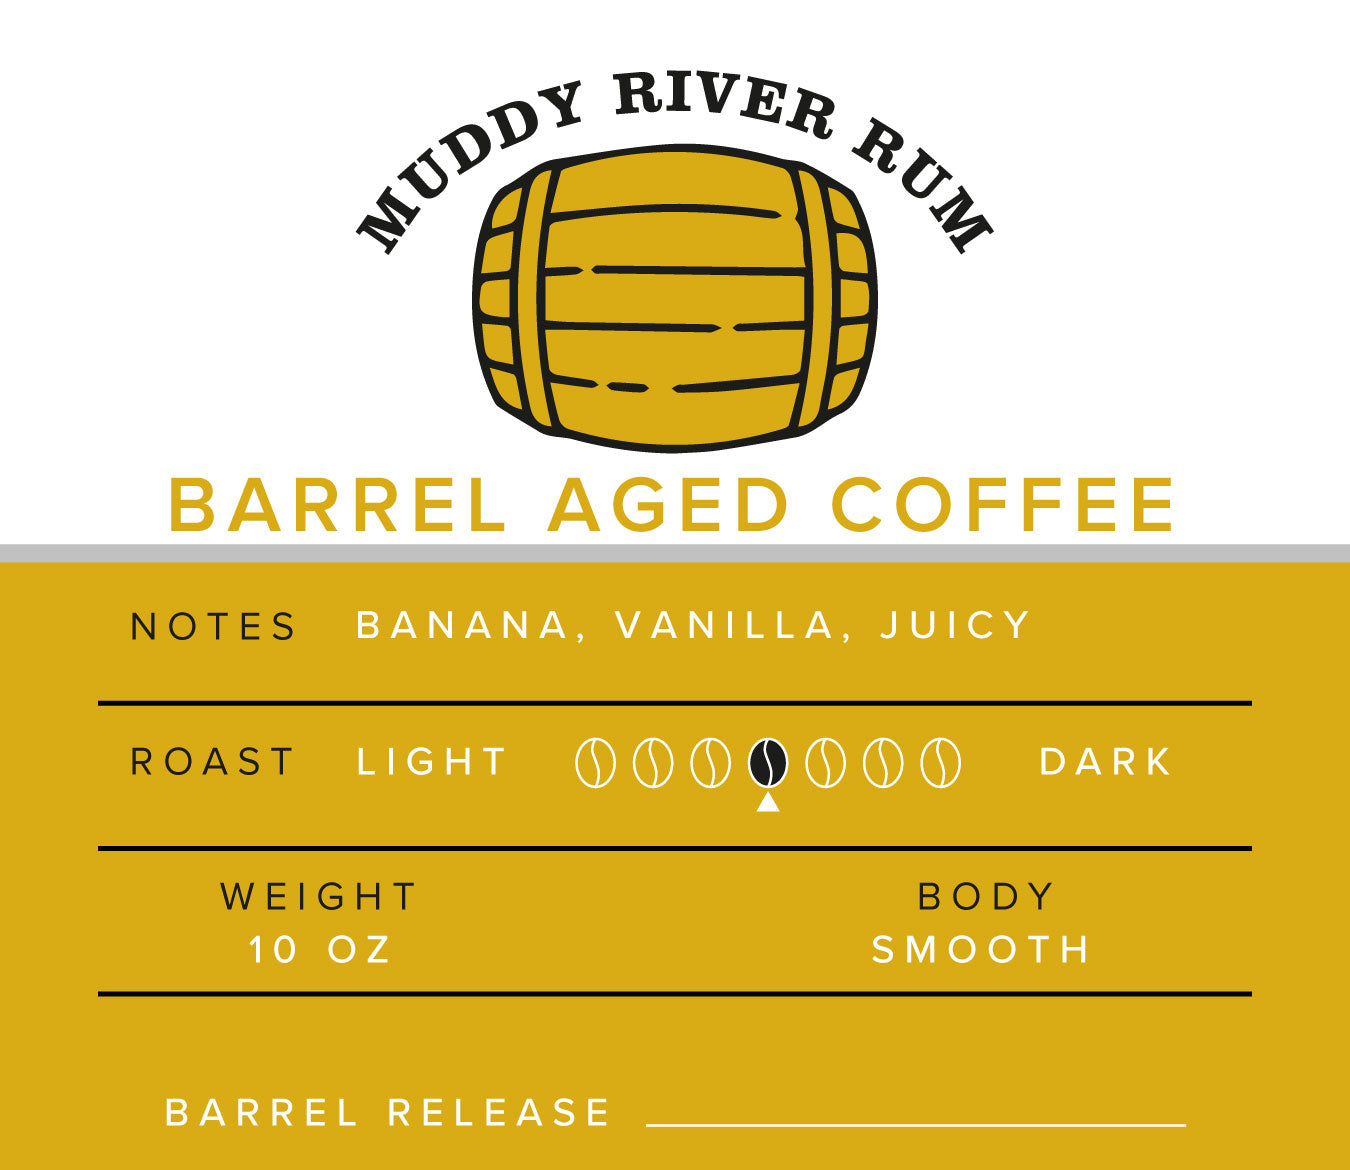 Barrel Aged - Rum Coffee